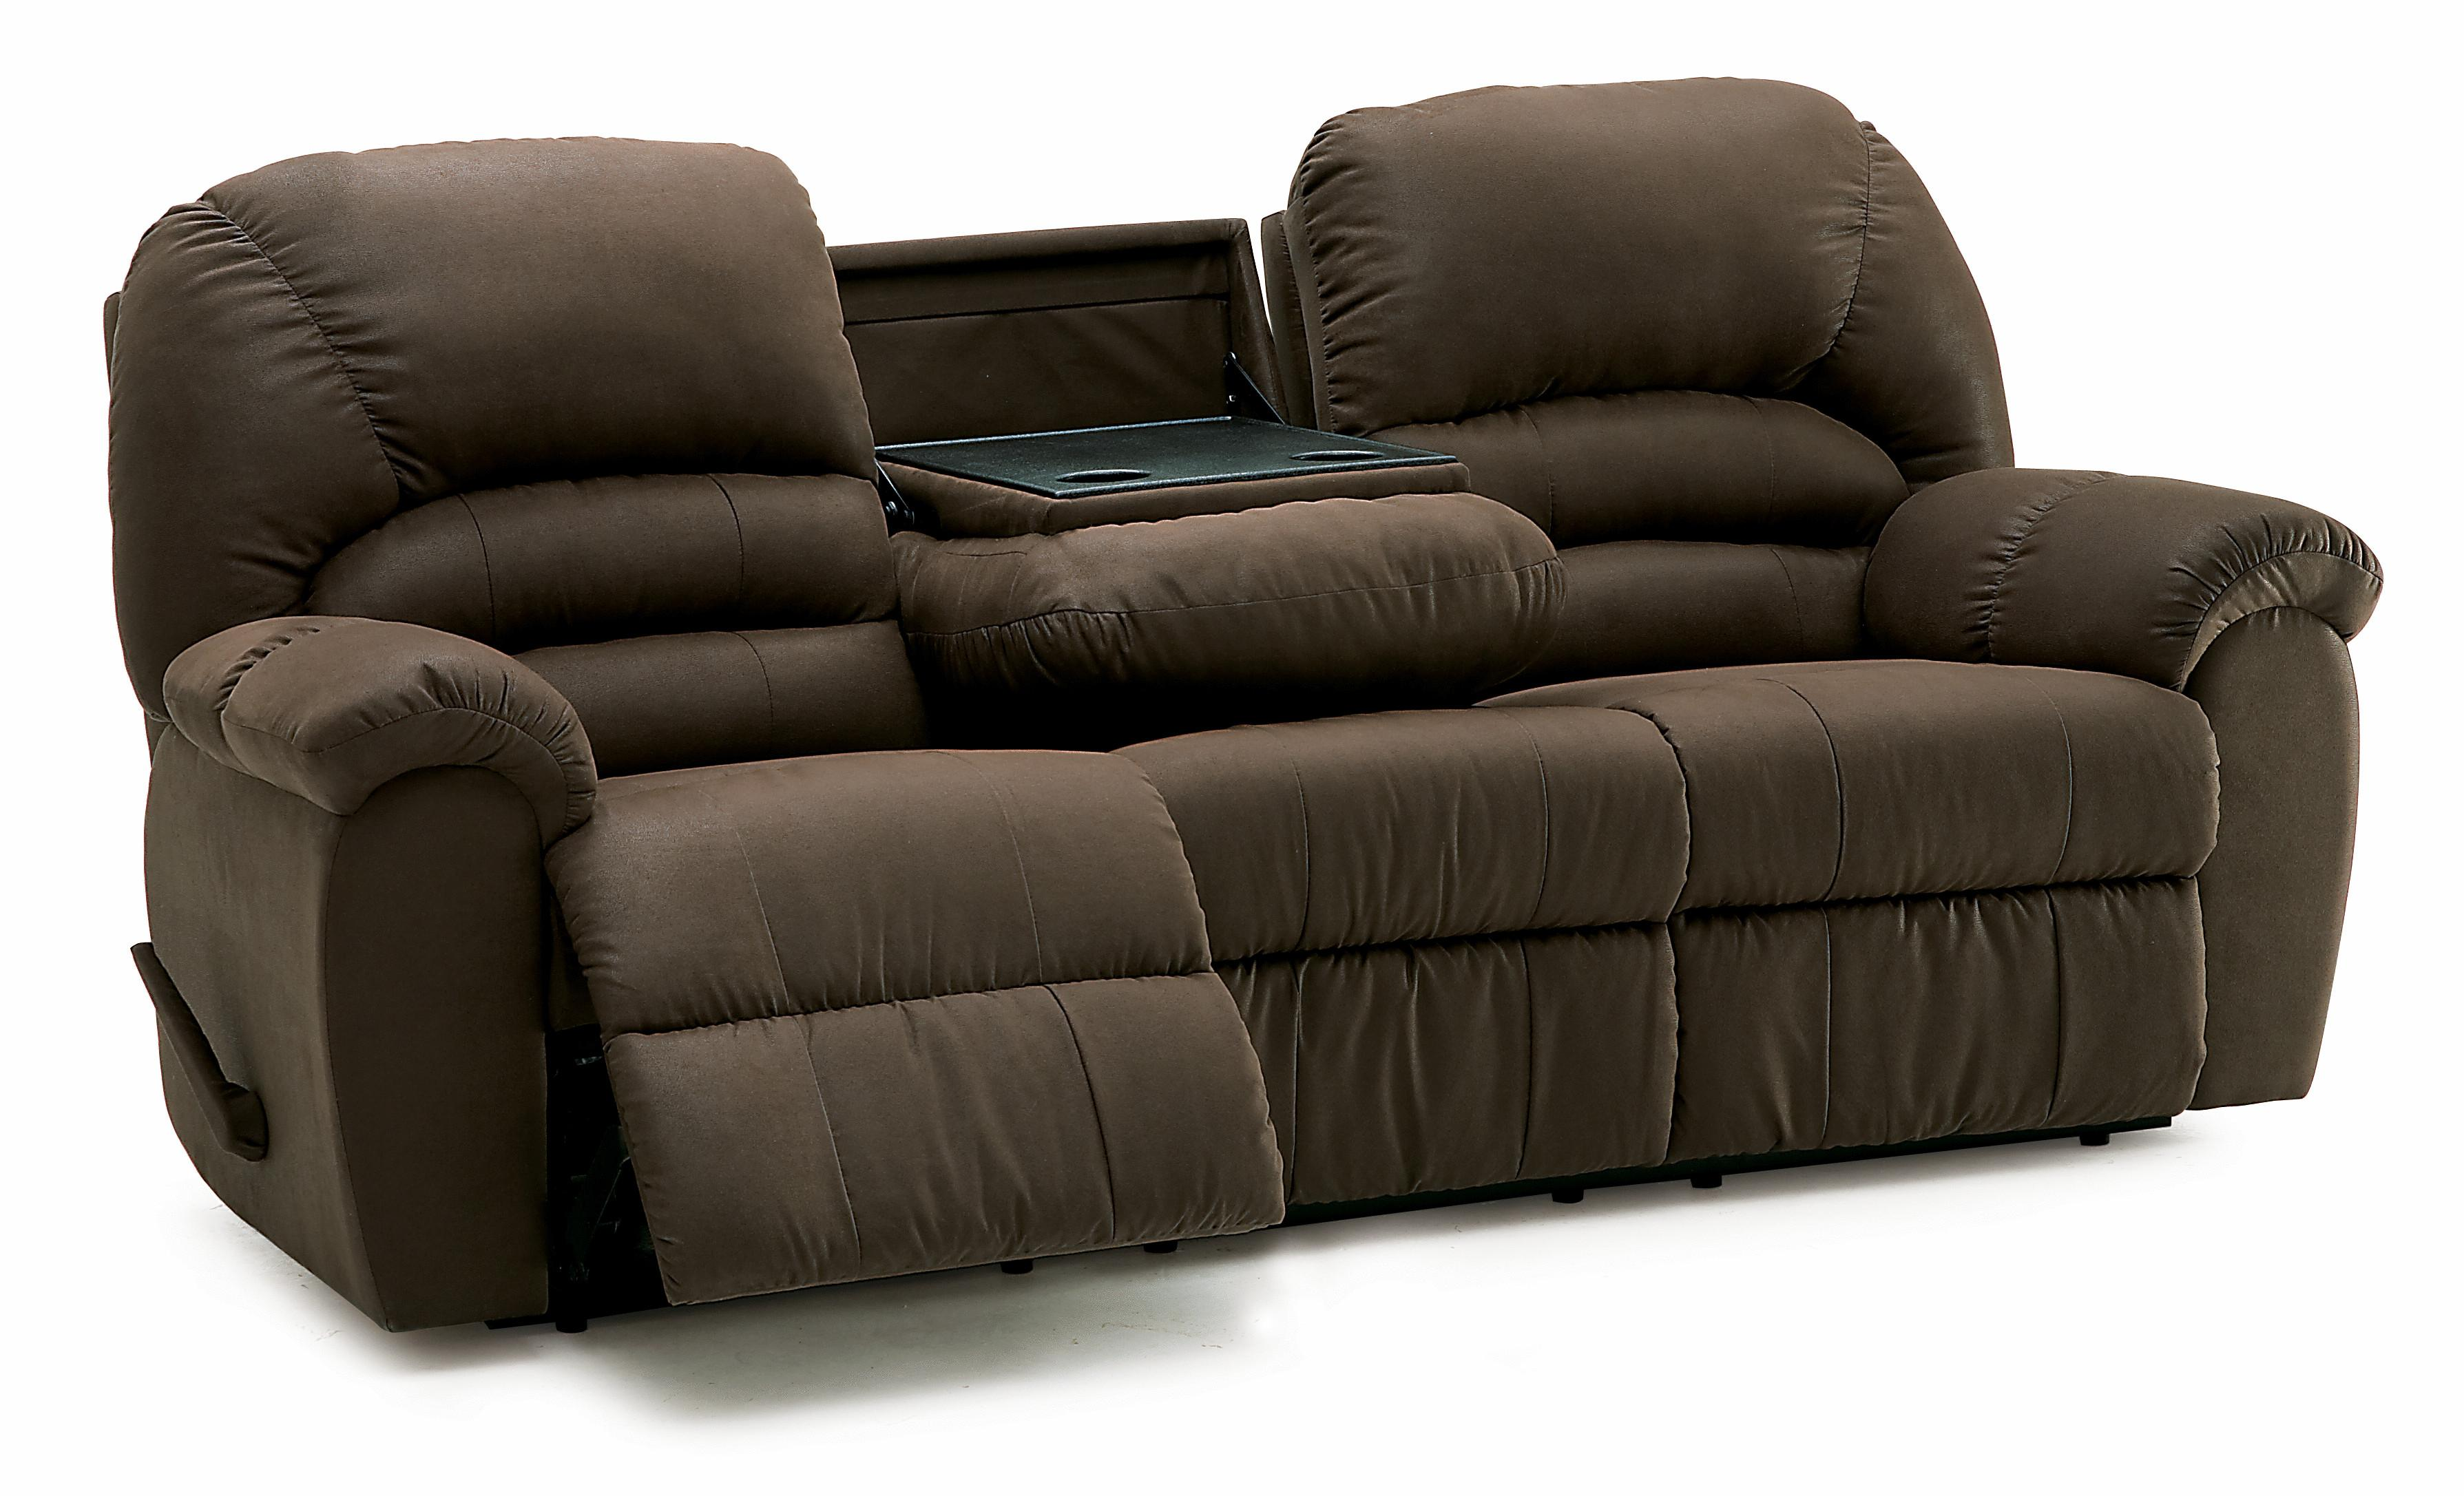 reclining mage sofa bettsofa interio with table mitchiner ...